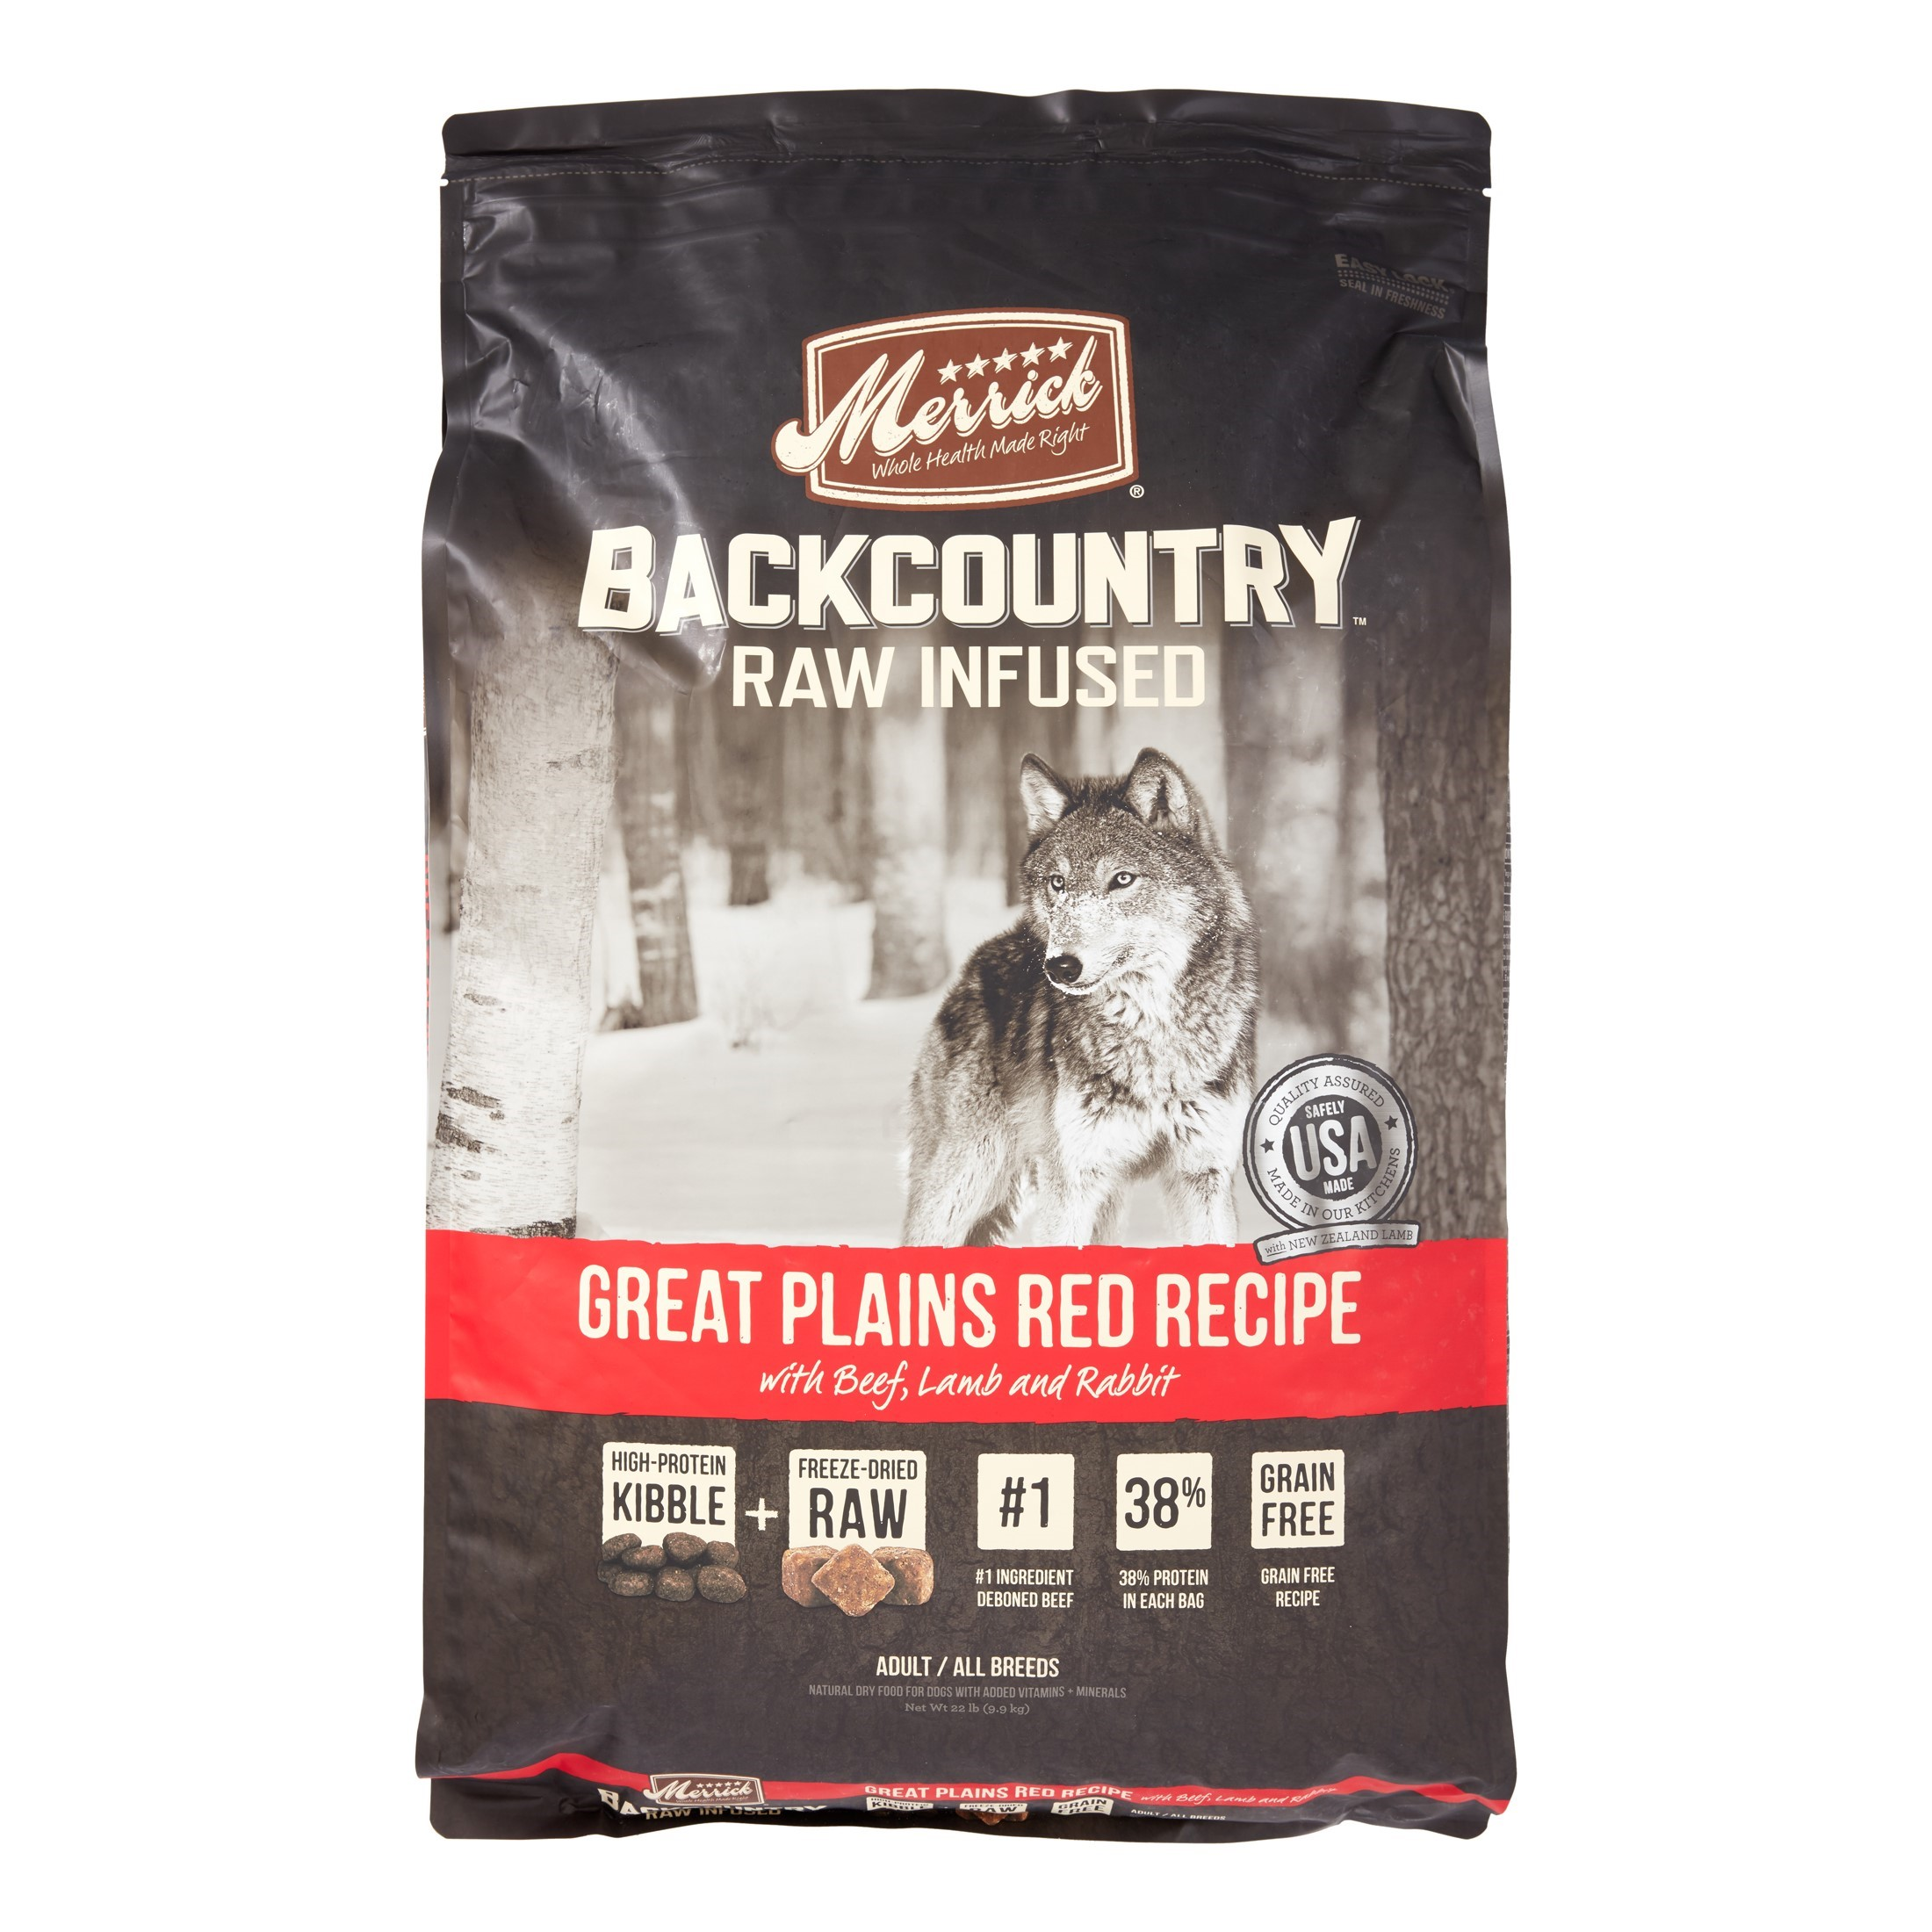 Merrick Backcountry Grain-Free Raw Infused Great Plains Red Recipe Dry Dog Food, 22 lb